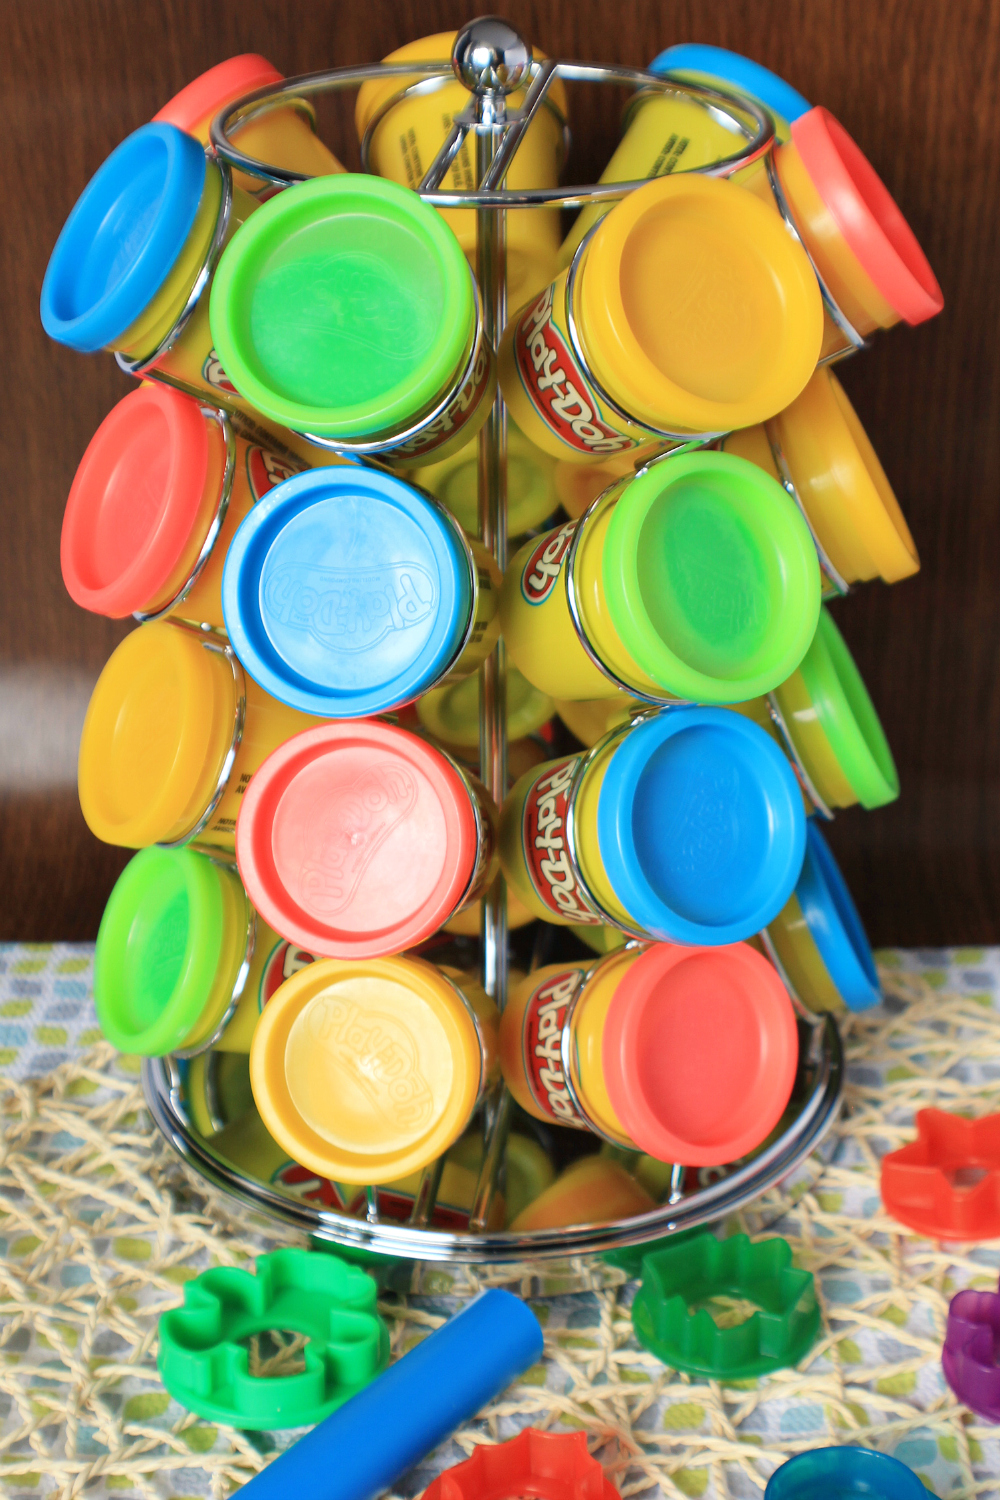 Coffee Pod Carousel Play-Doh Holder Mom Hack